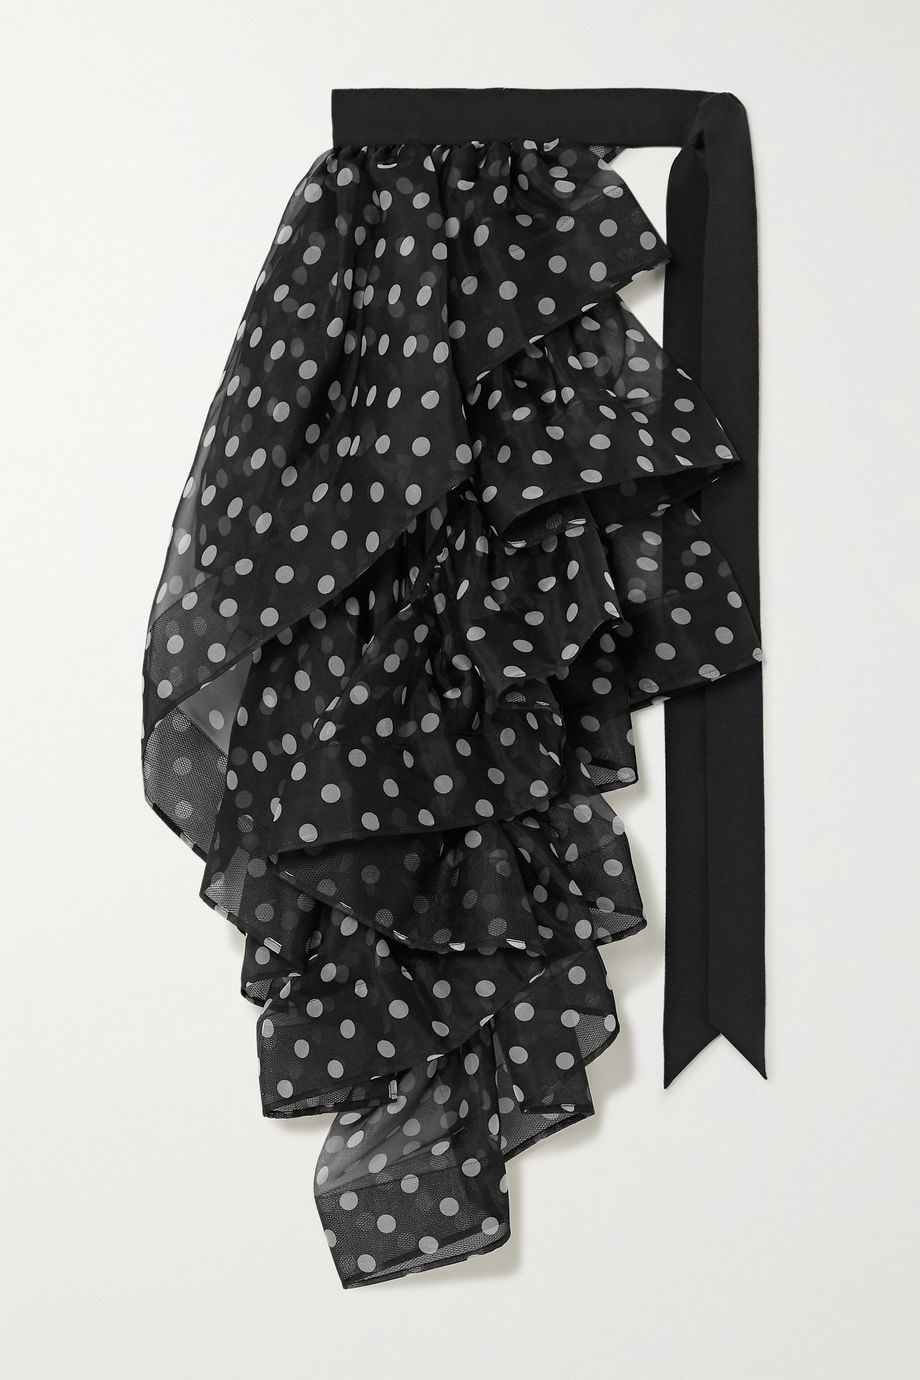 Dries Van Noten Ruffled polka-dot silk-georgette and grosgrain belt